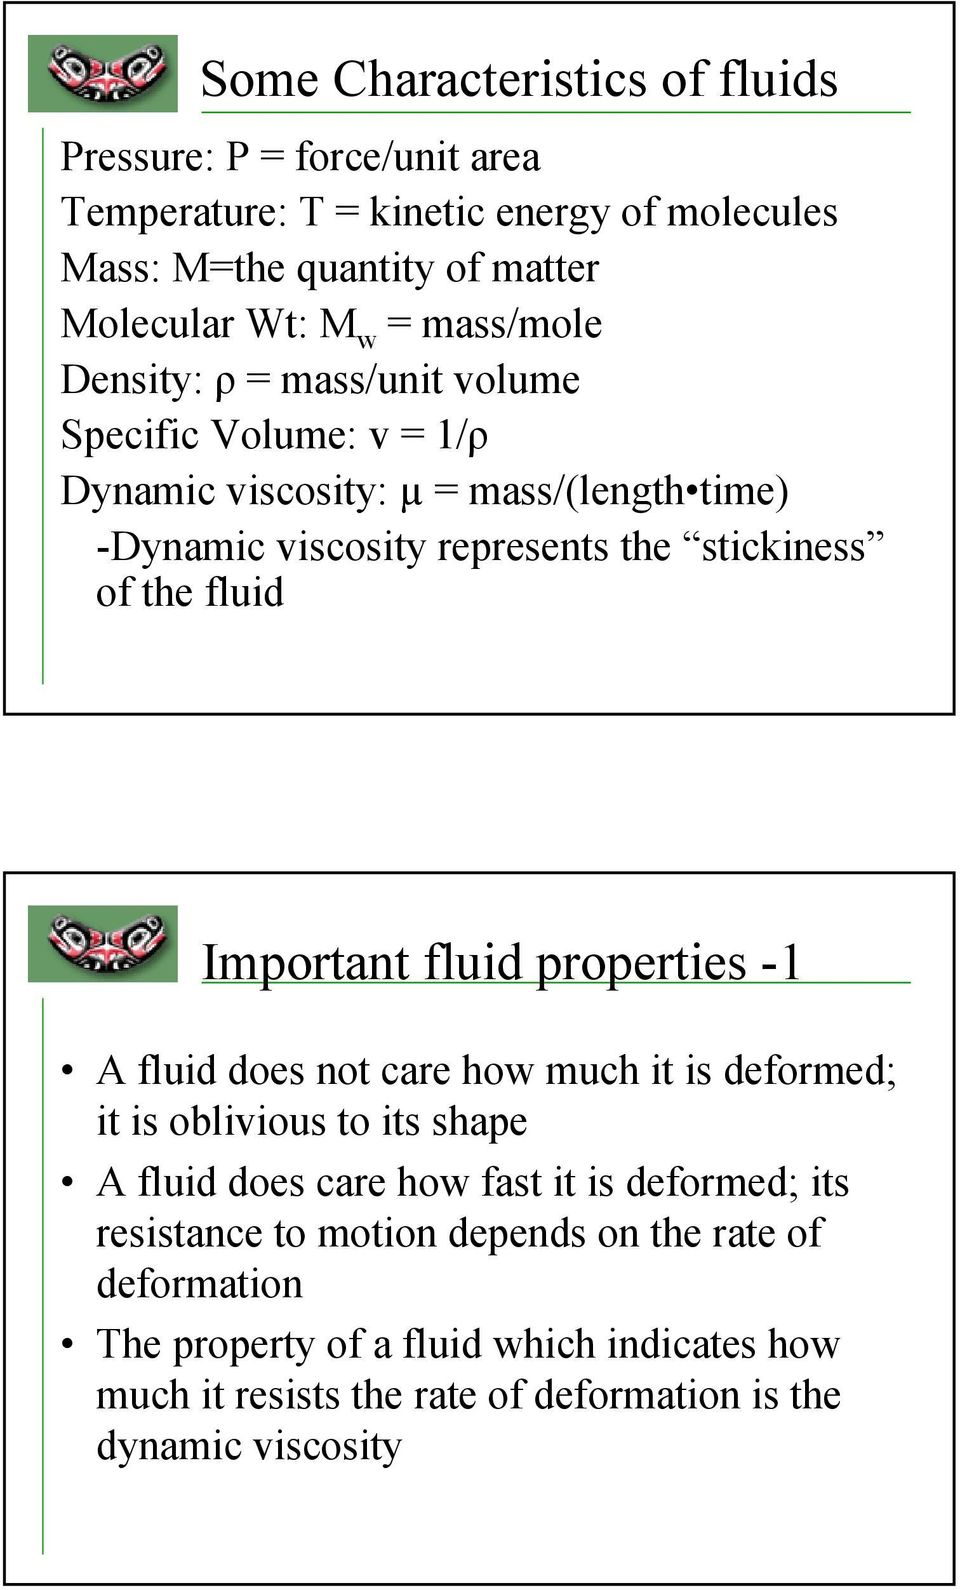 fluid Important fluid properties - A fluid does not care how much it is deformed; it is oblivious to its shape A fluid does care how fast it is deformed; its